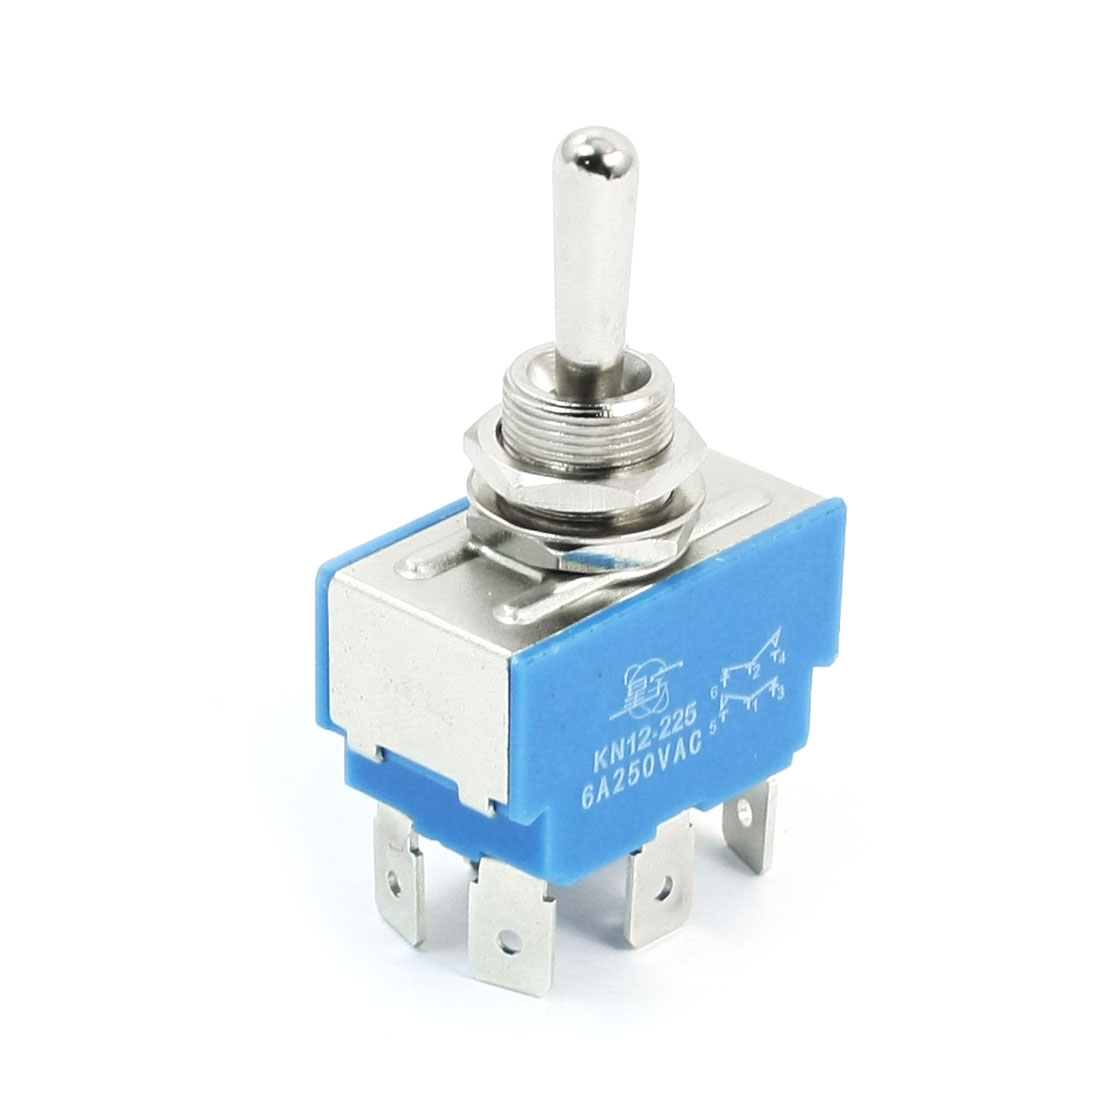 AC250V 6A DPDT 3 Positions ON/OFF/ON 6 Pins Terminal Toggle Switch